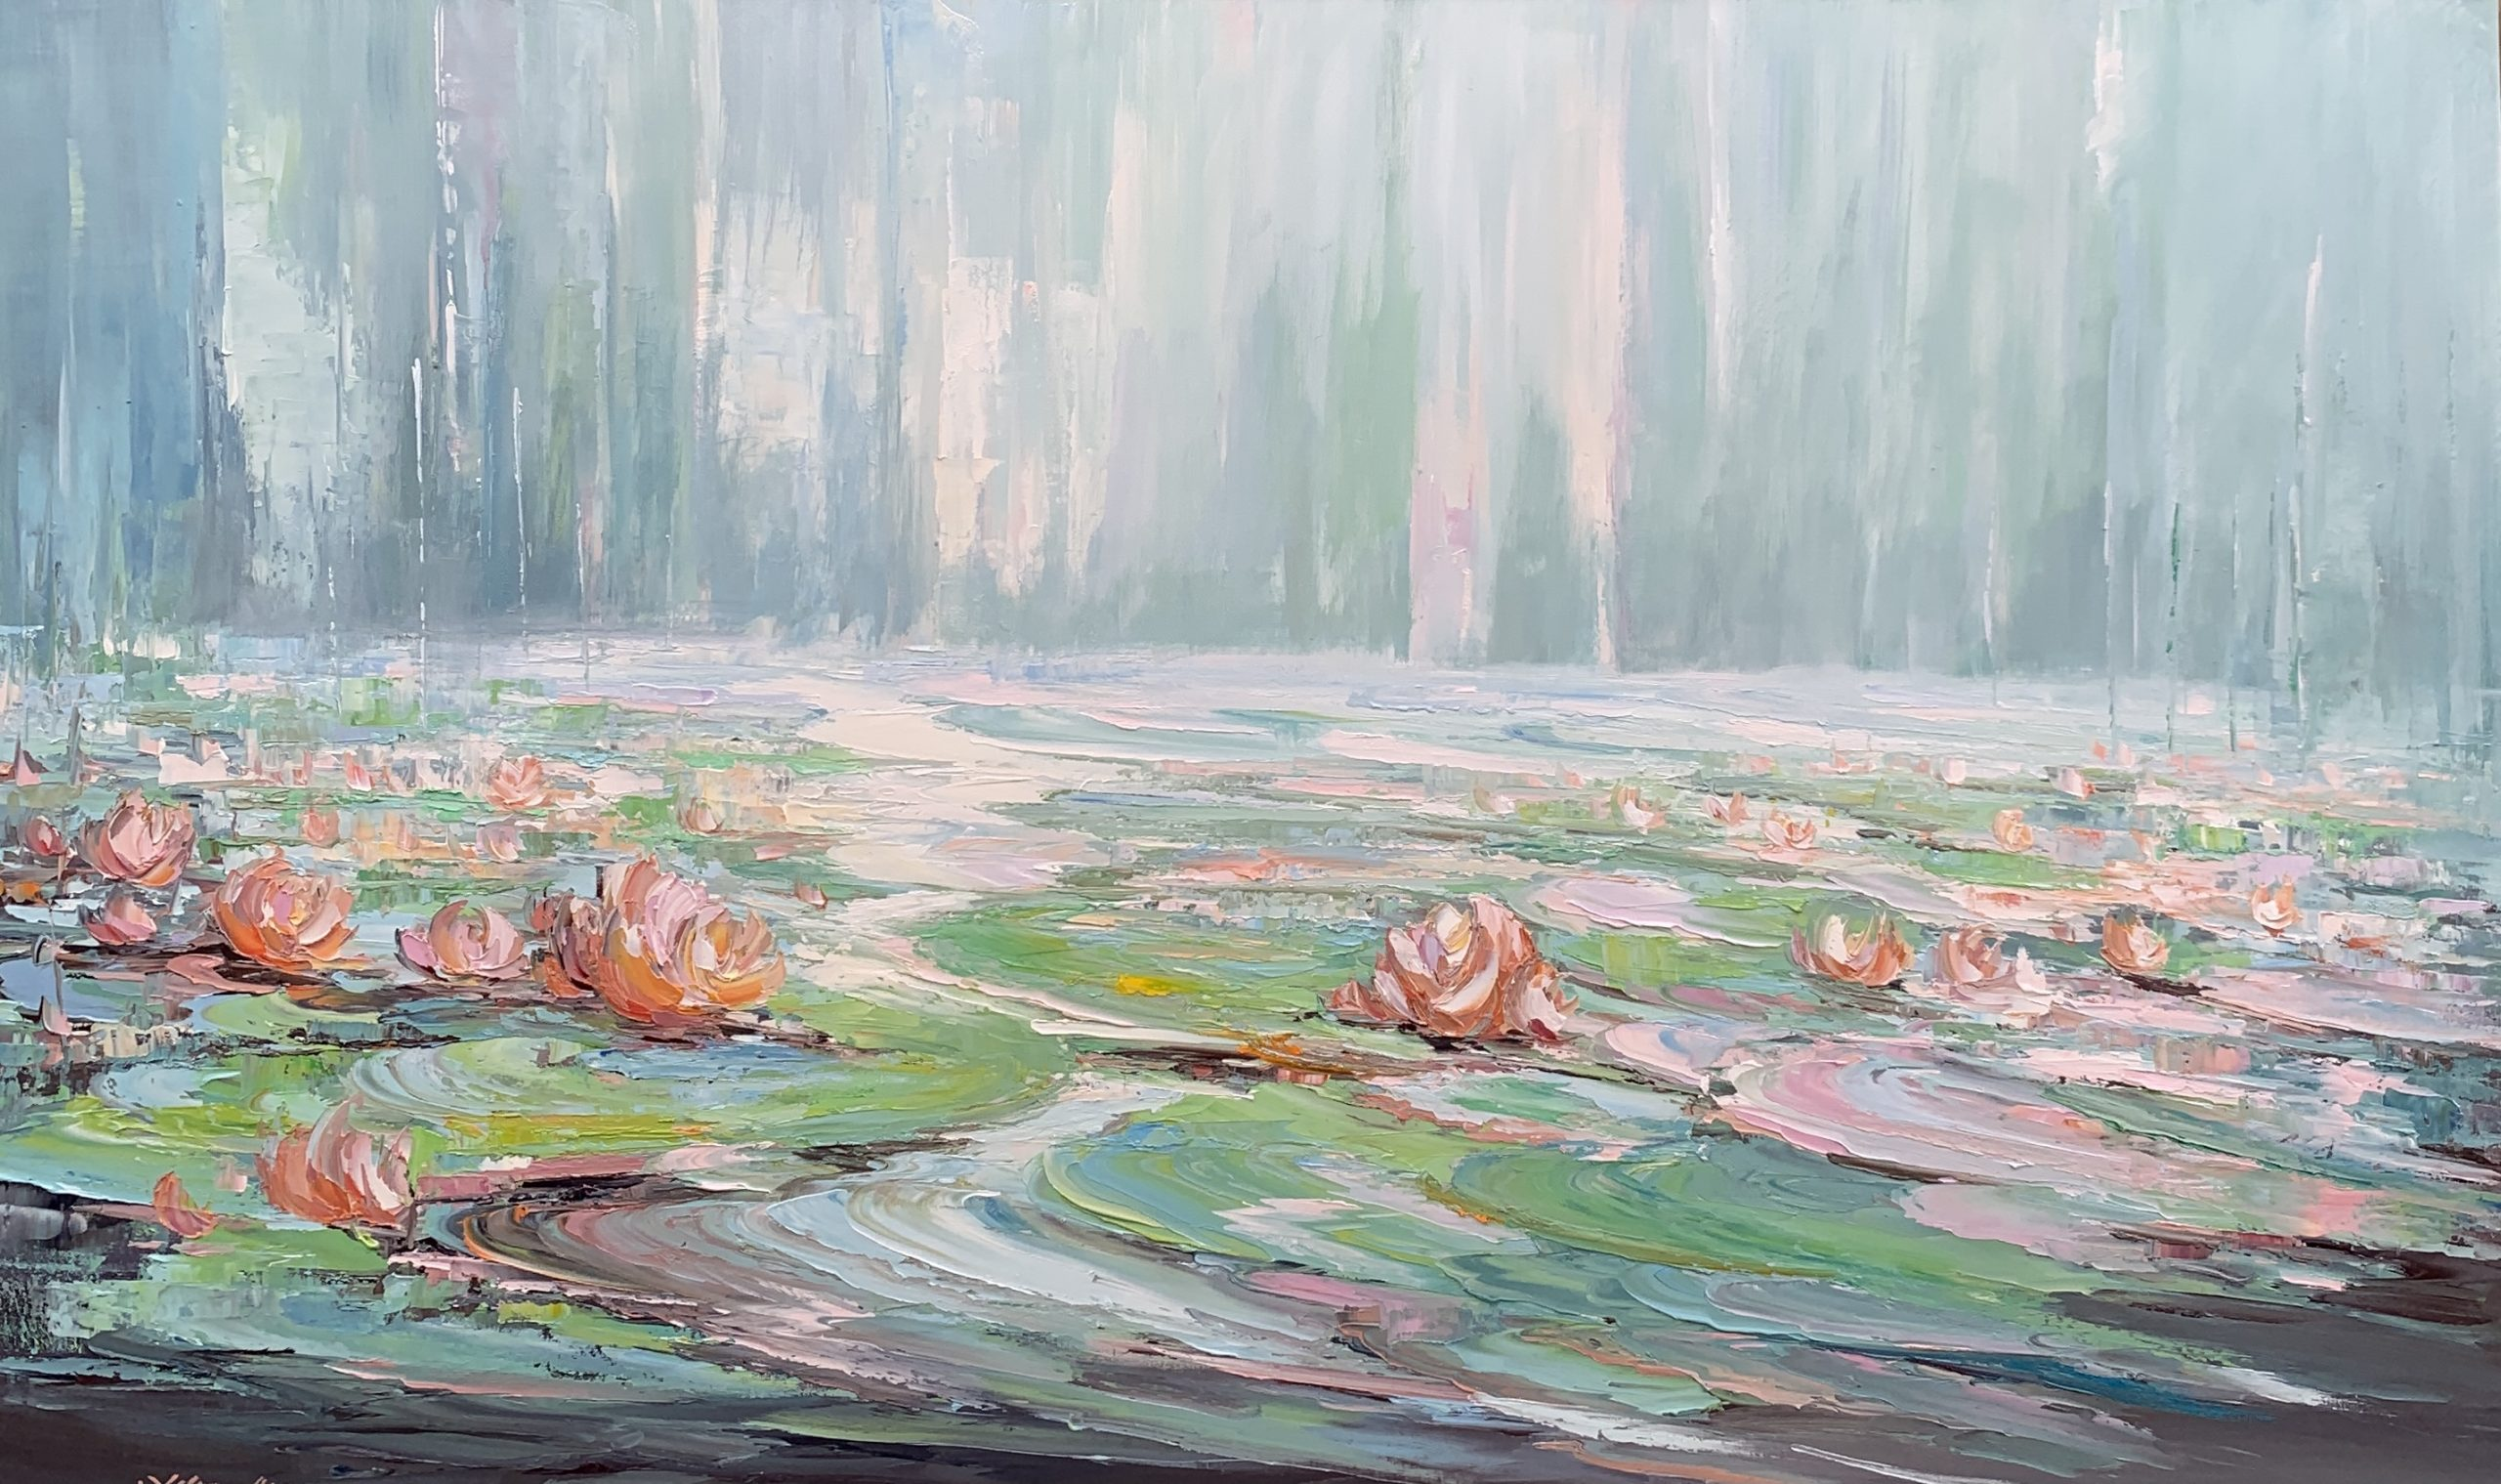 281 Water Lilies 45, 152x91cm